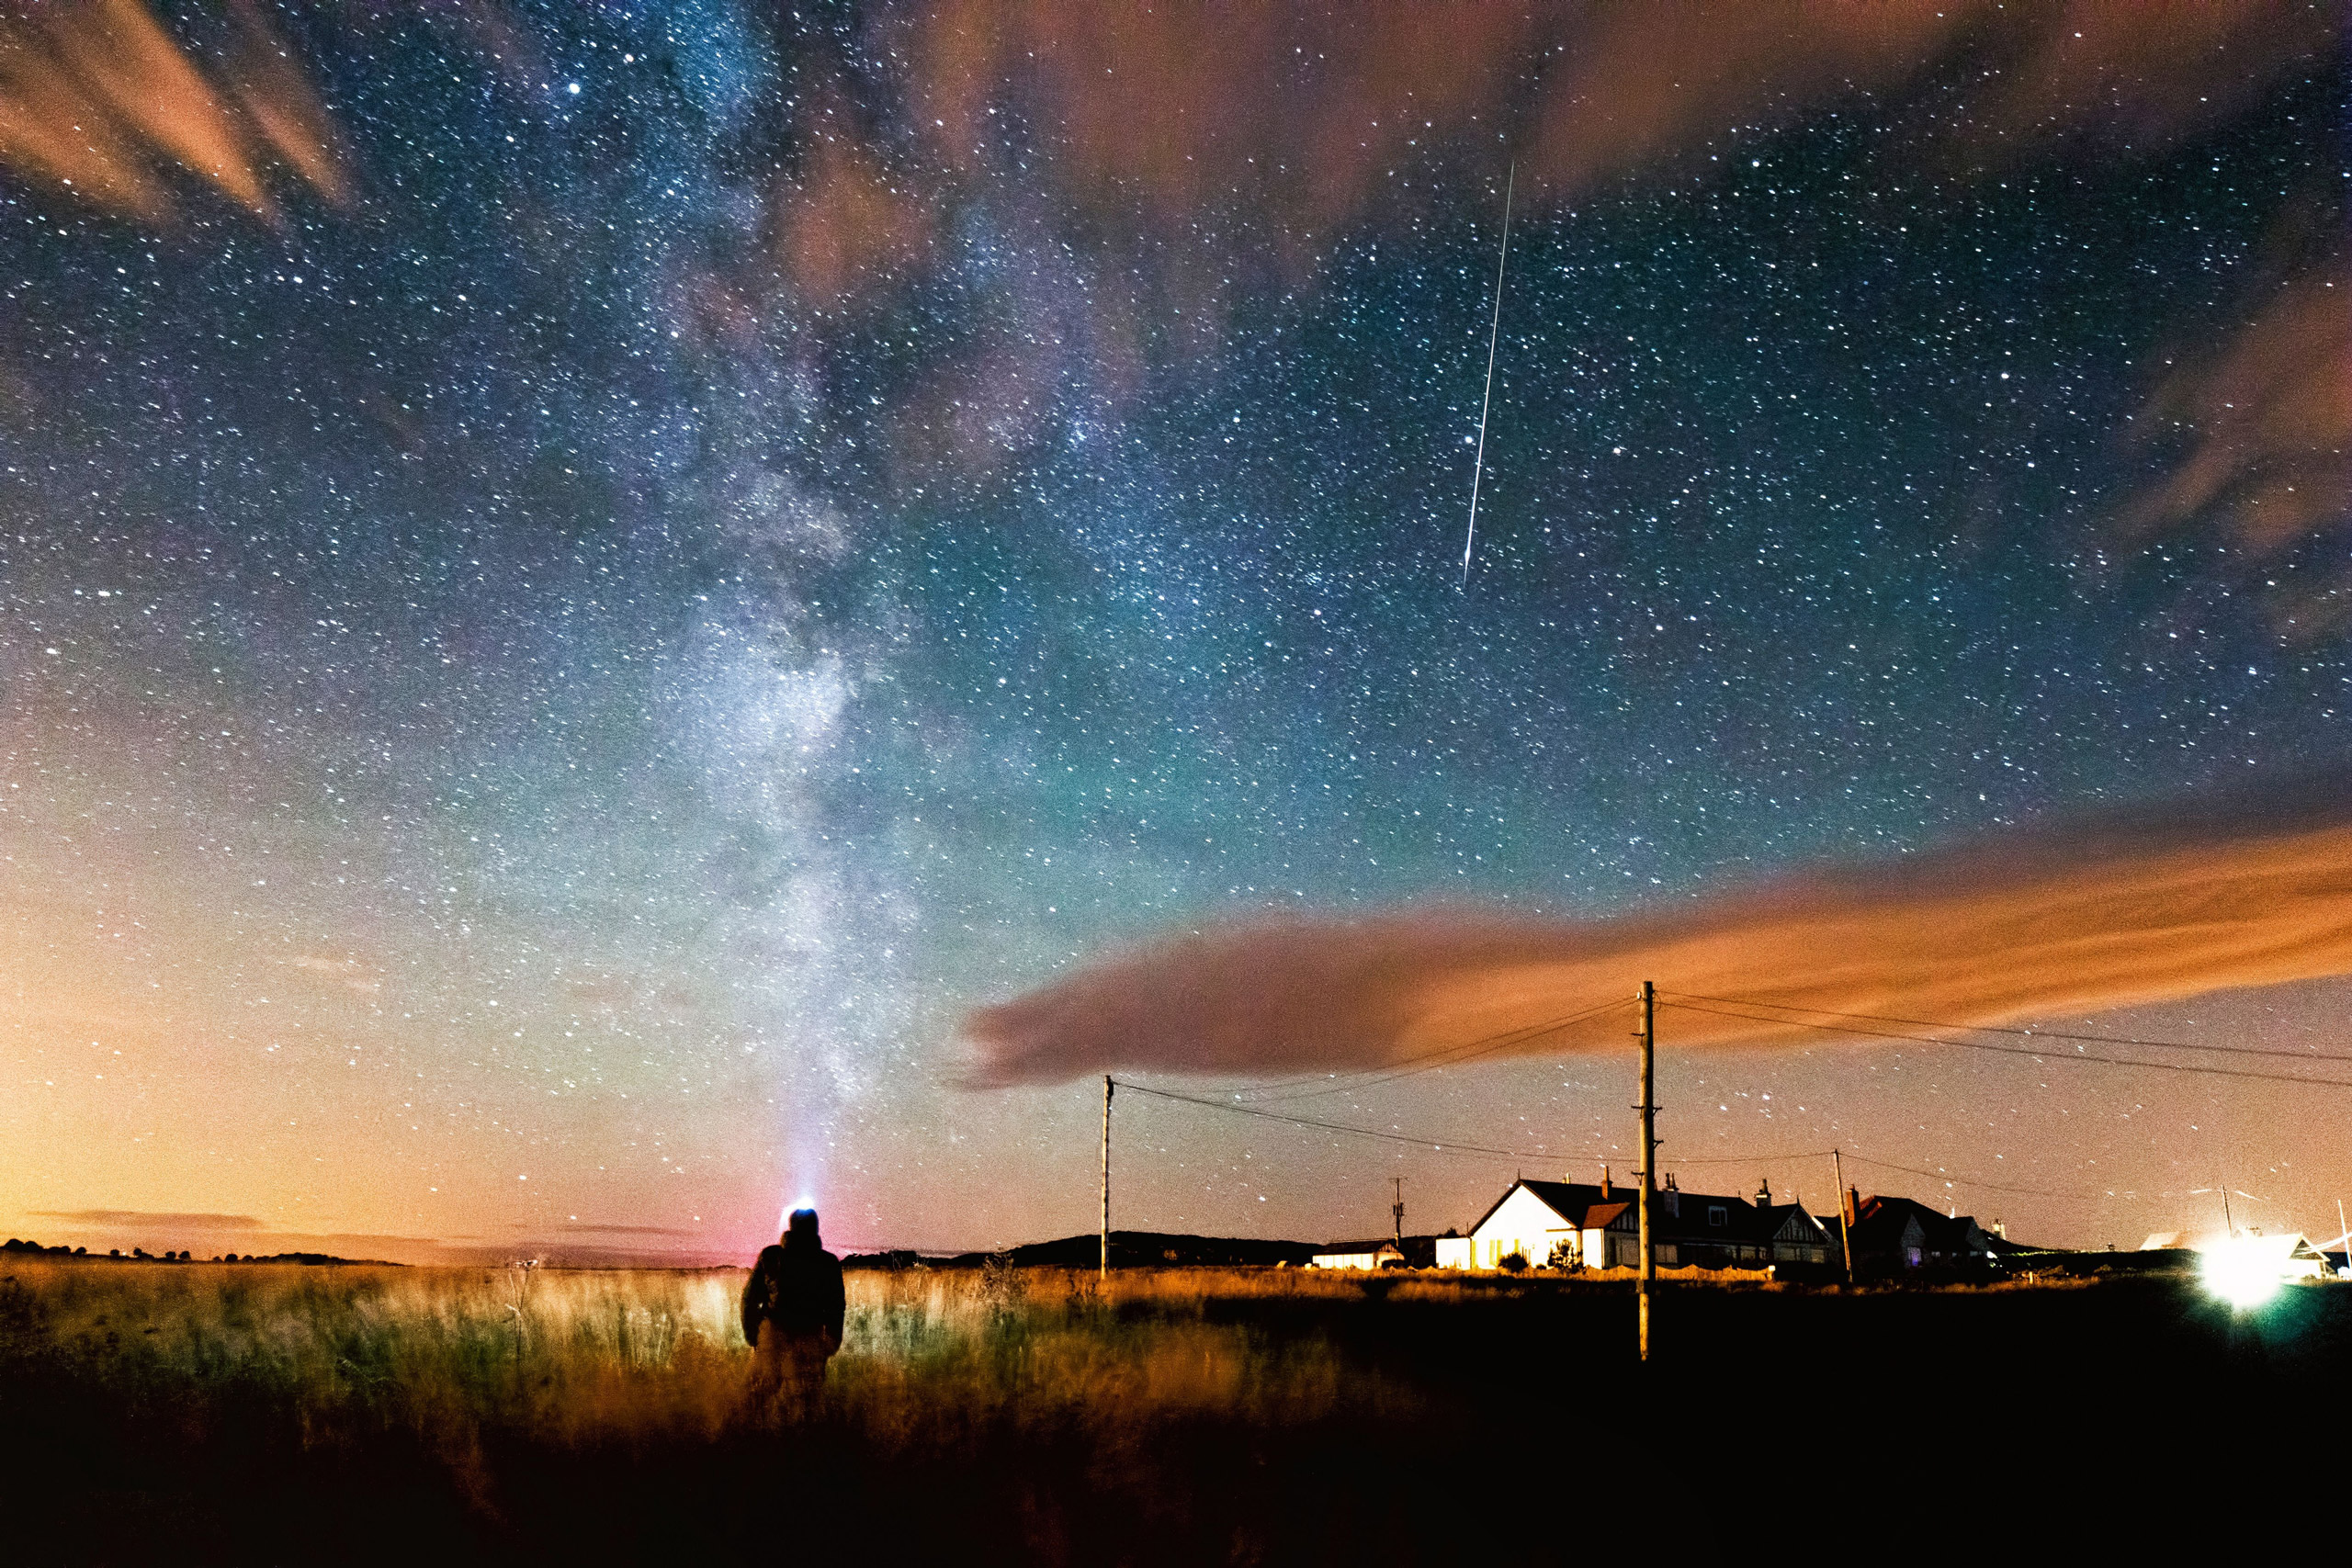 The Perseid meteor shower at Bamburgh in Northumberland in August 2015.